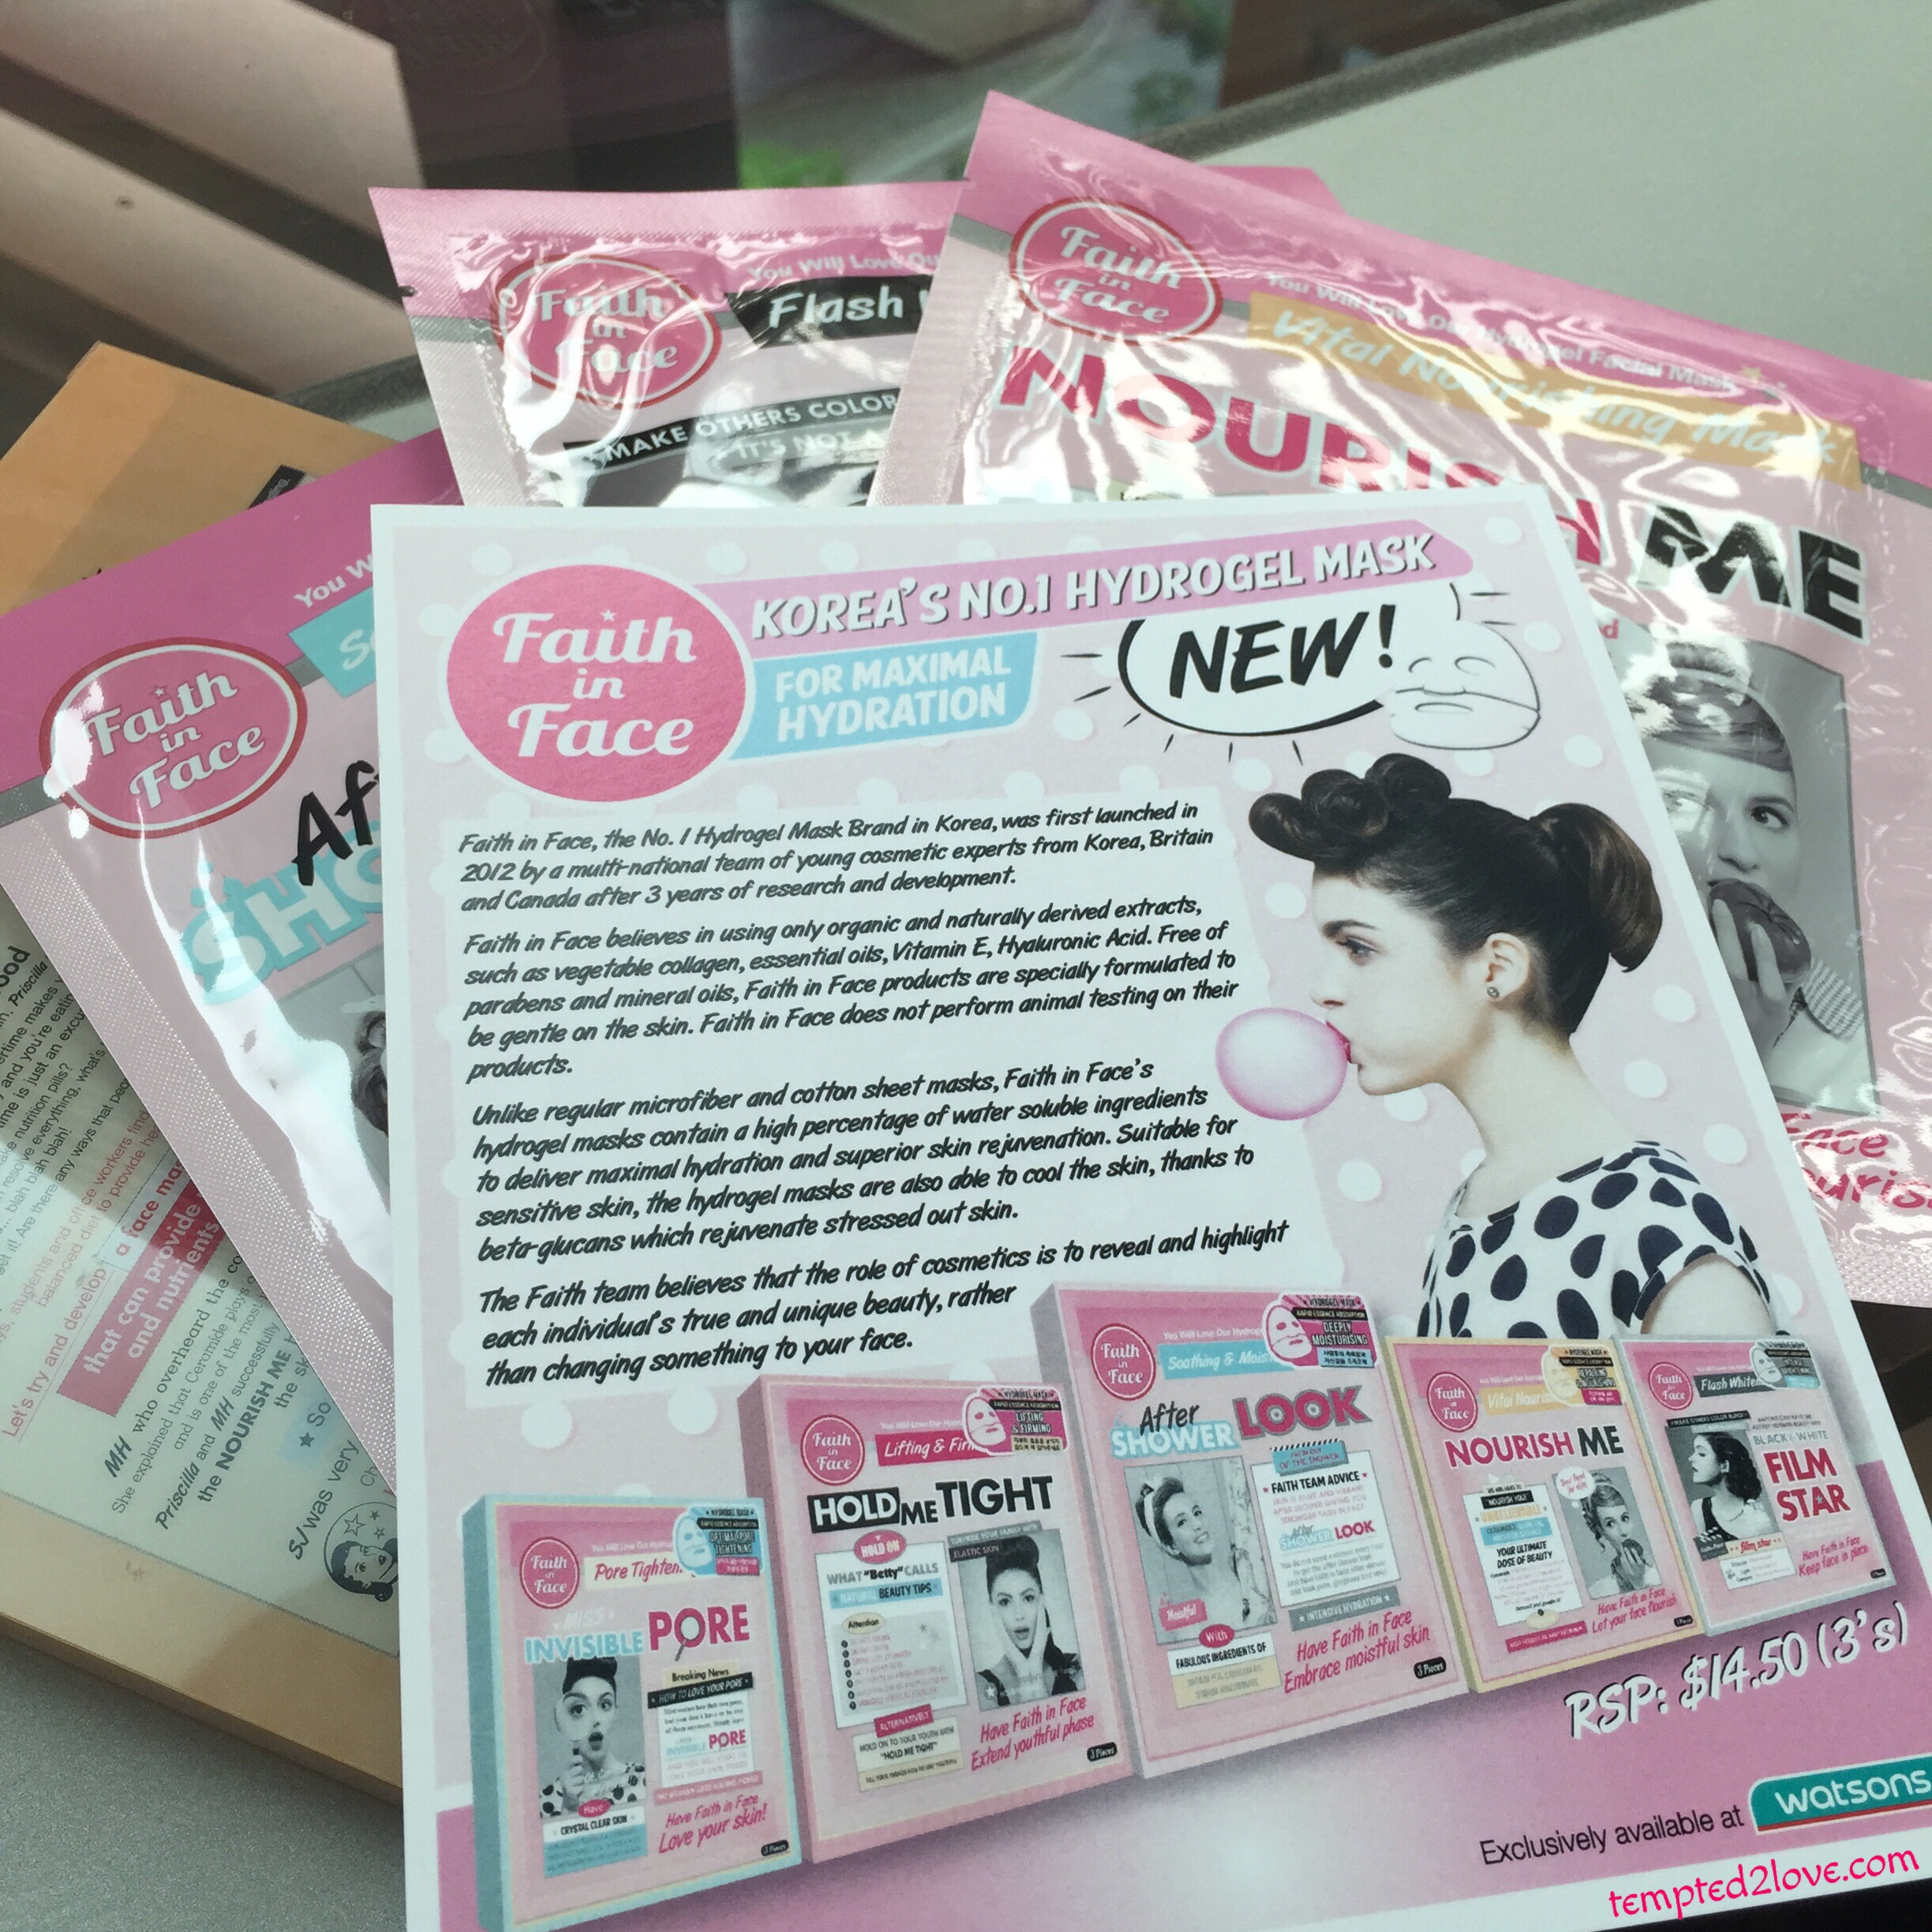 8a512bf937c 1 Hydrogel Mask Brand in Korea, was first launched in 2012 by a  multi-national team of young cosmetic experts from Korea, Britain and  Canada after 3 years ...